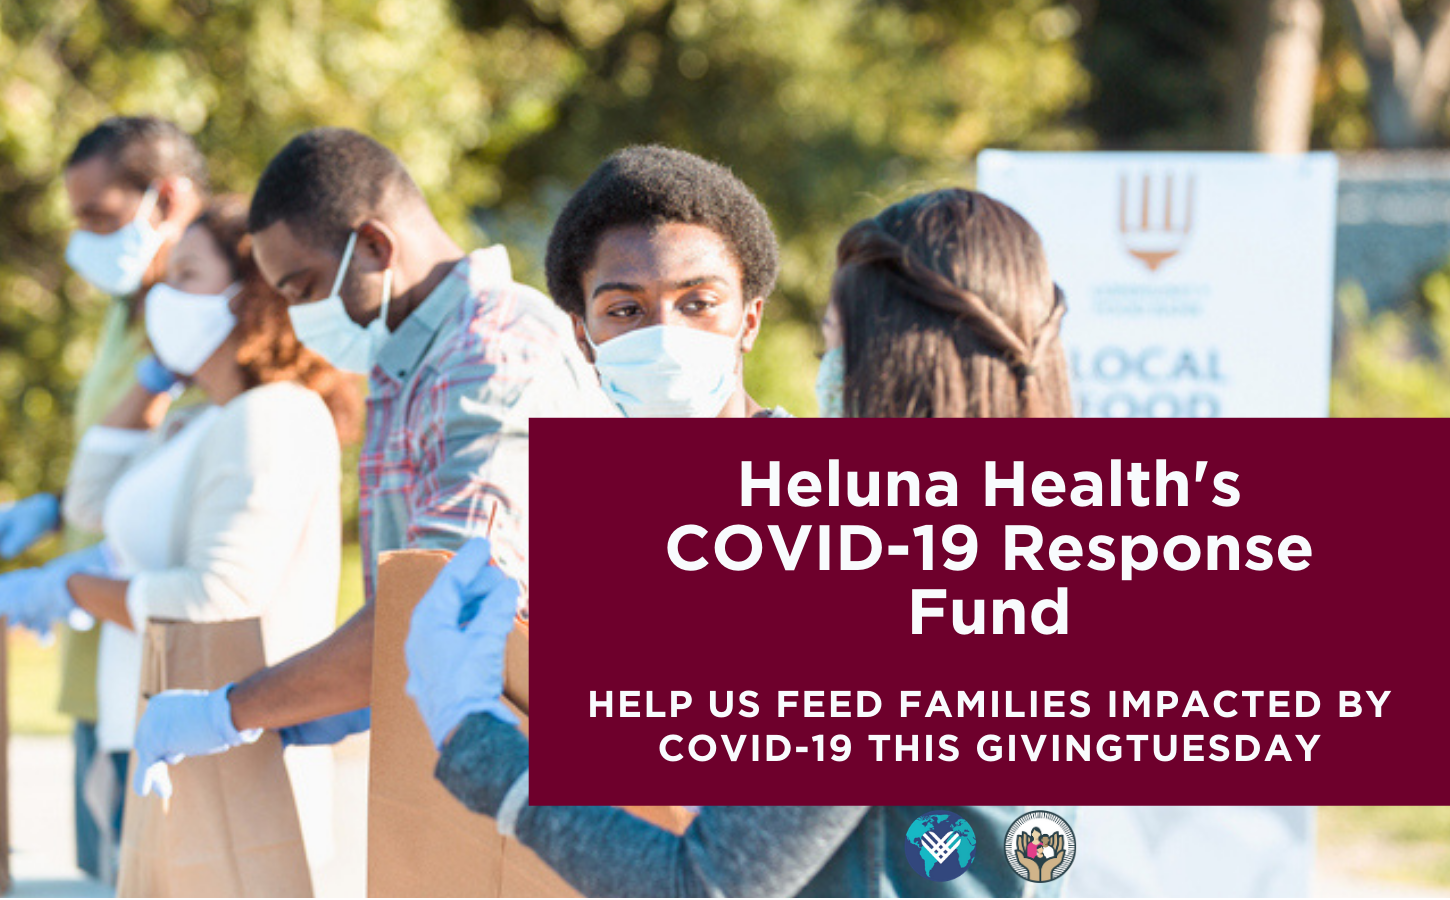 Heluna Health is inviting you to join us in supporting those impacted by hunger that is ravaging communities impacted by COVID-19.